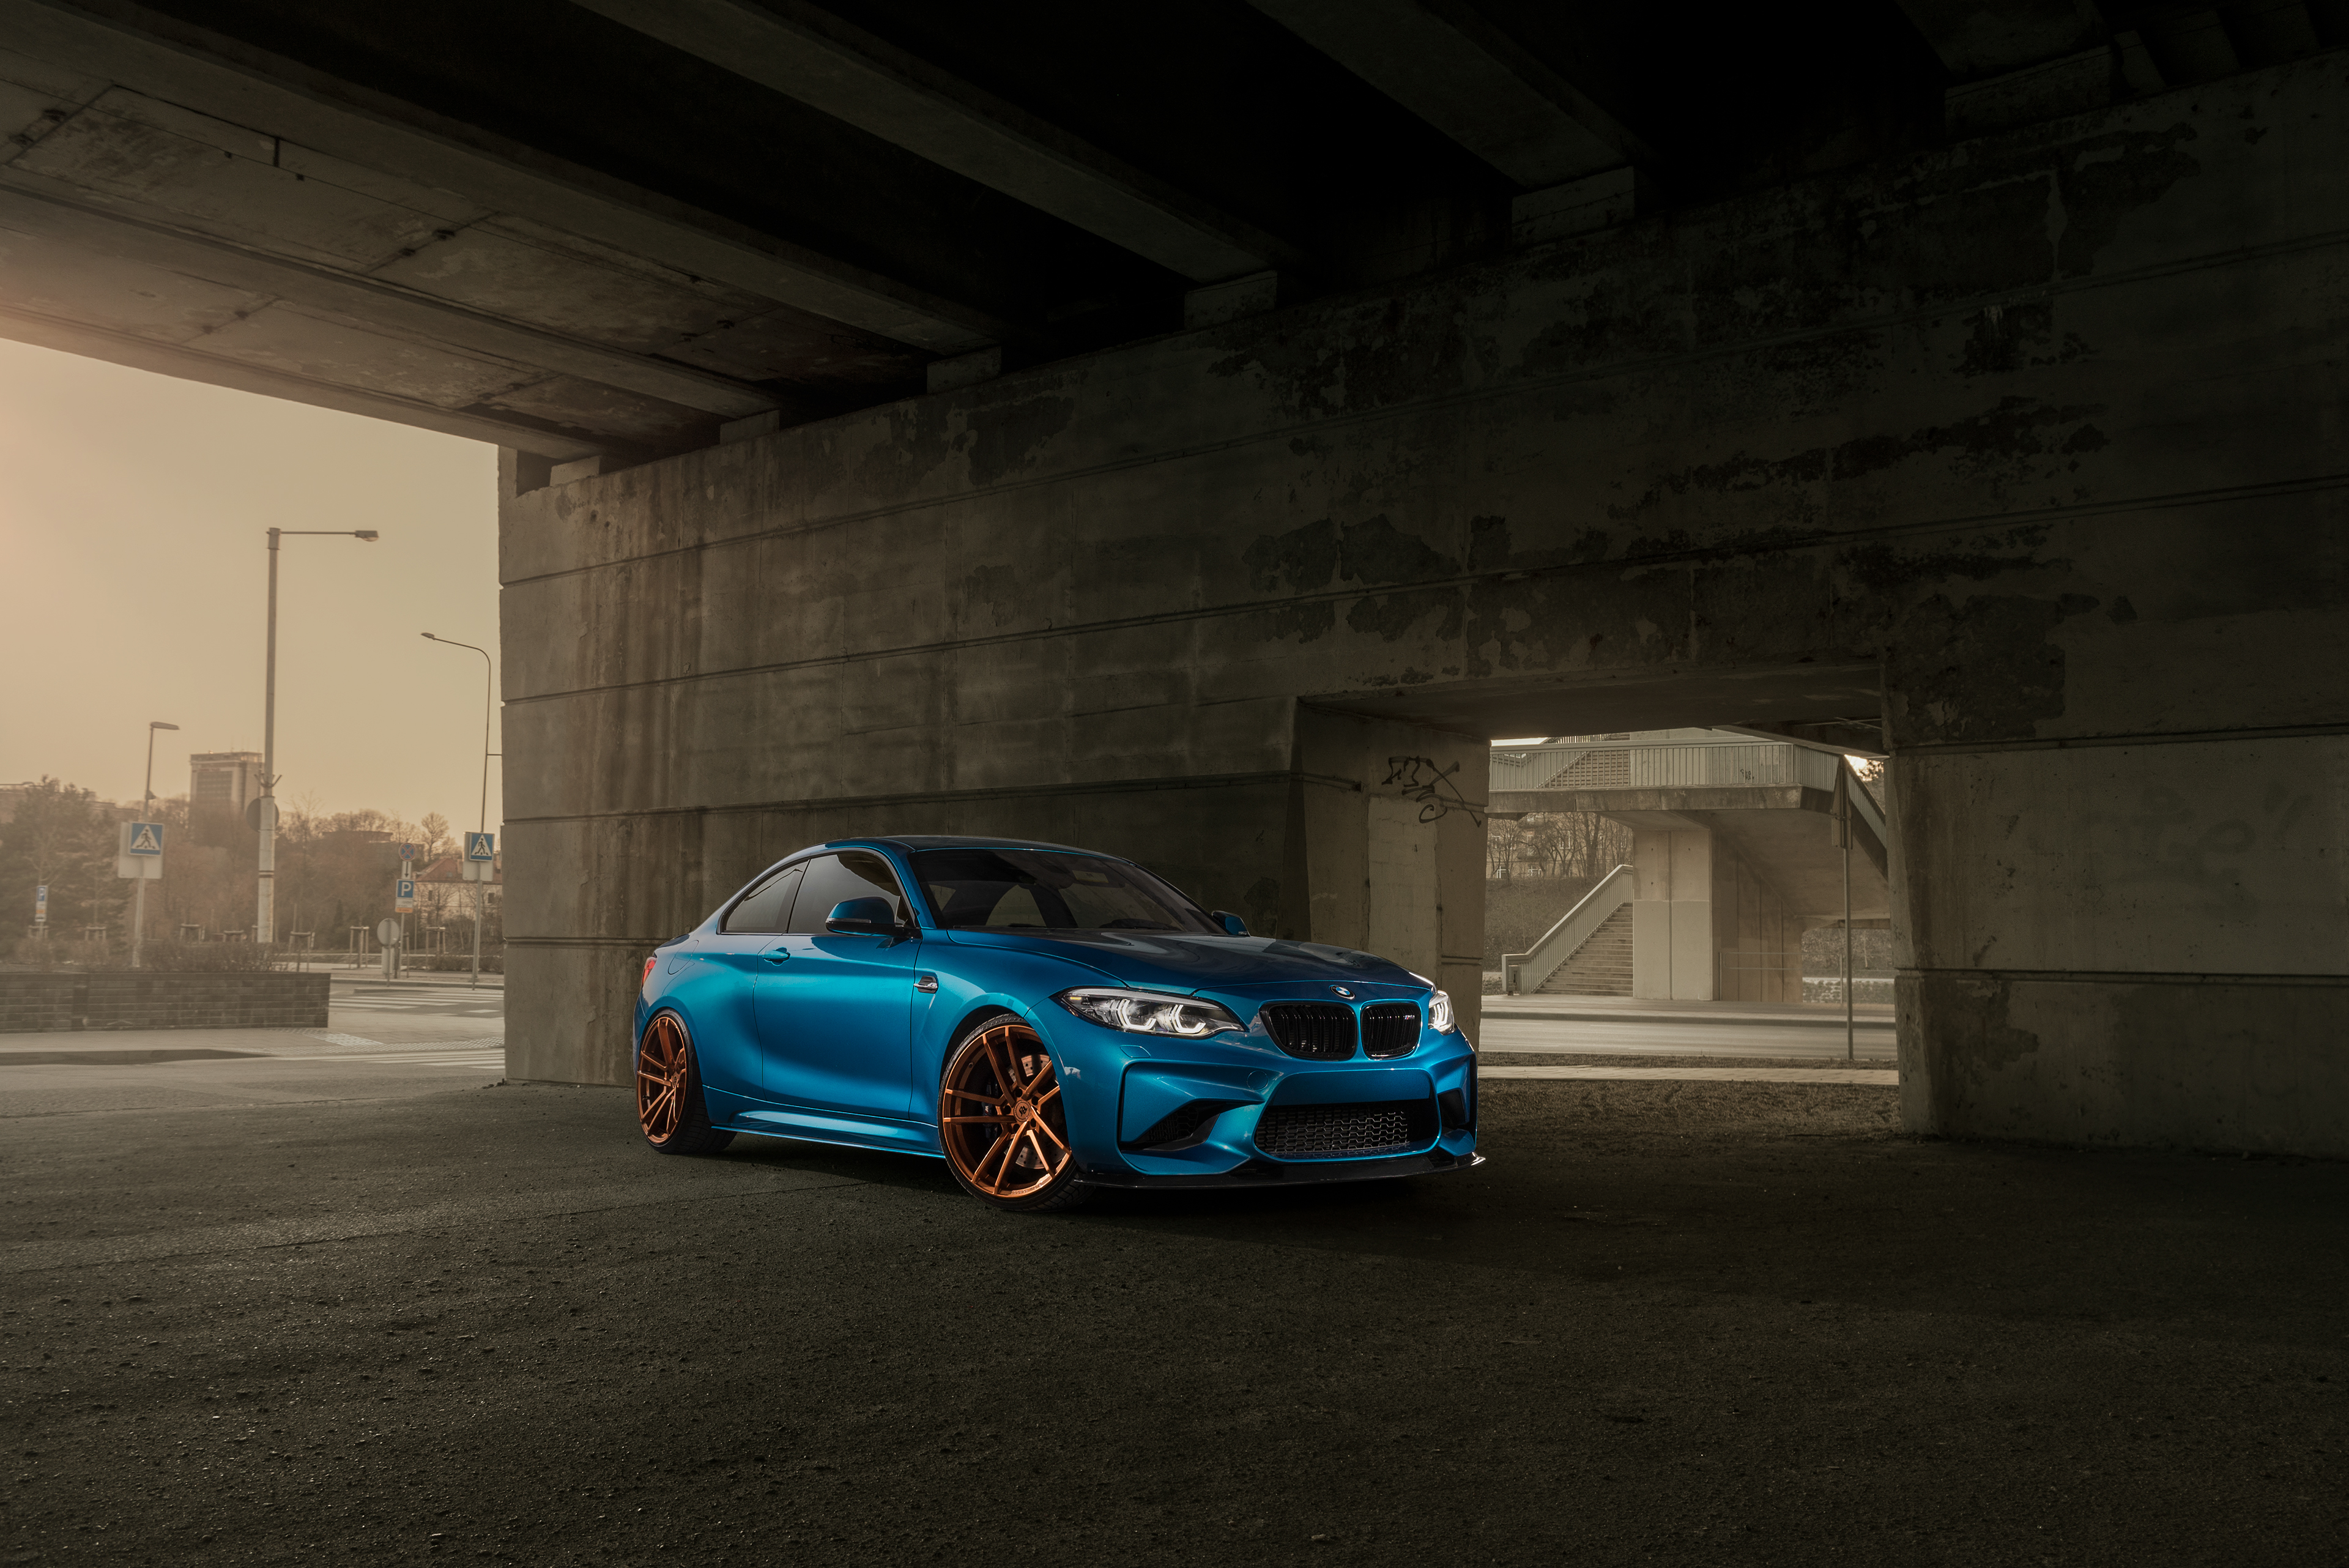 Bmw M2 Front 4k Hd Cars 4k Wallpapers Images Backgrounds Photos And Pictures